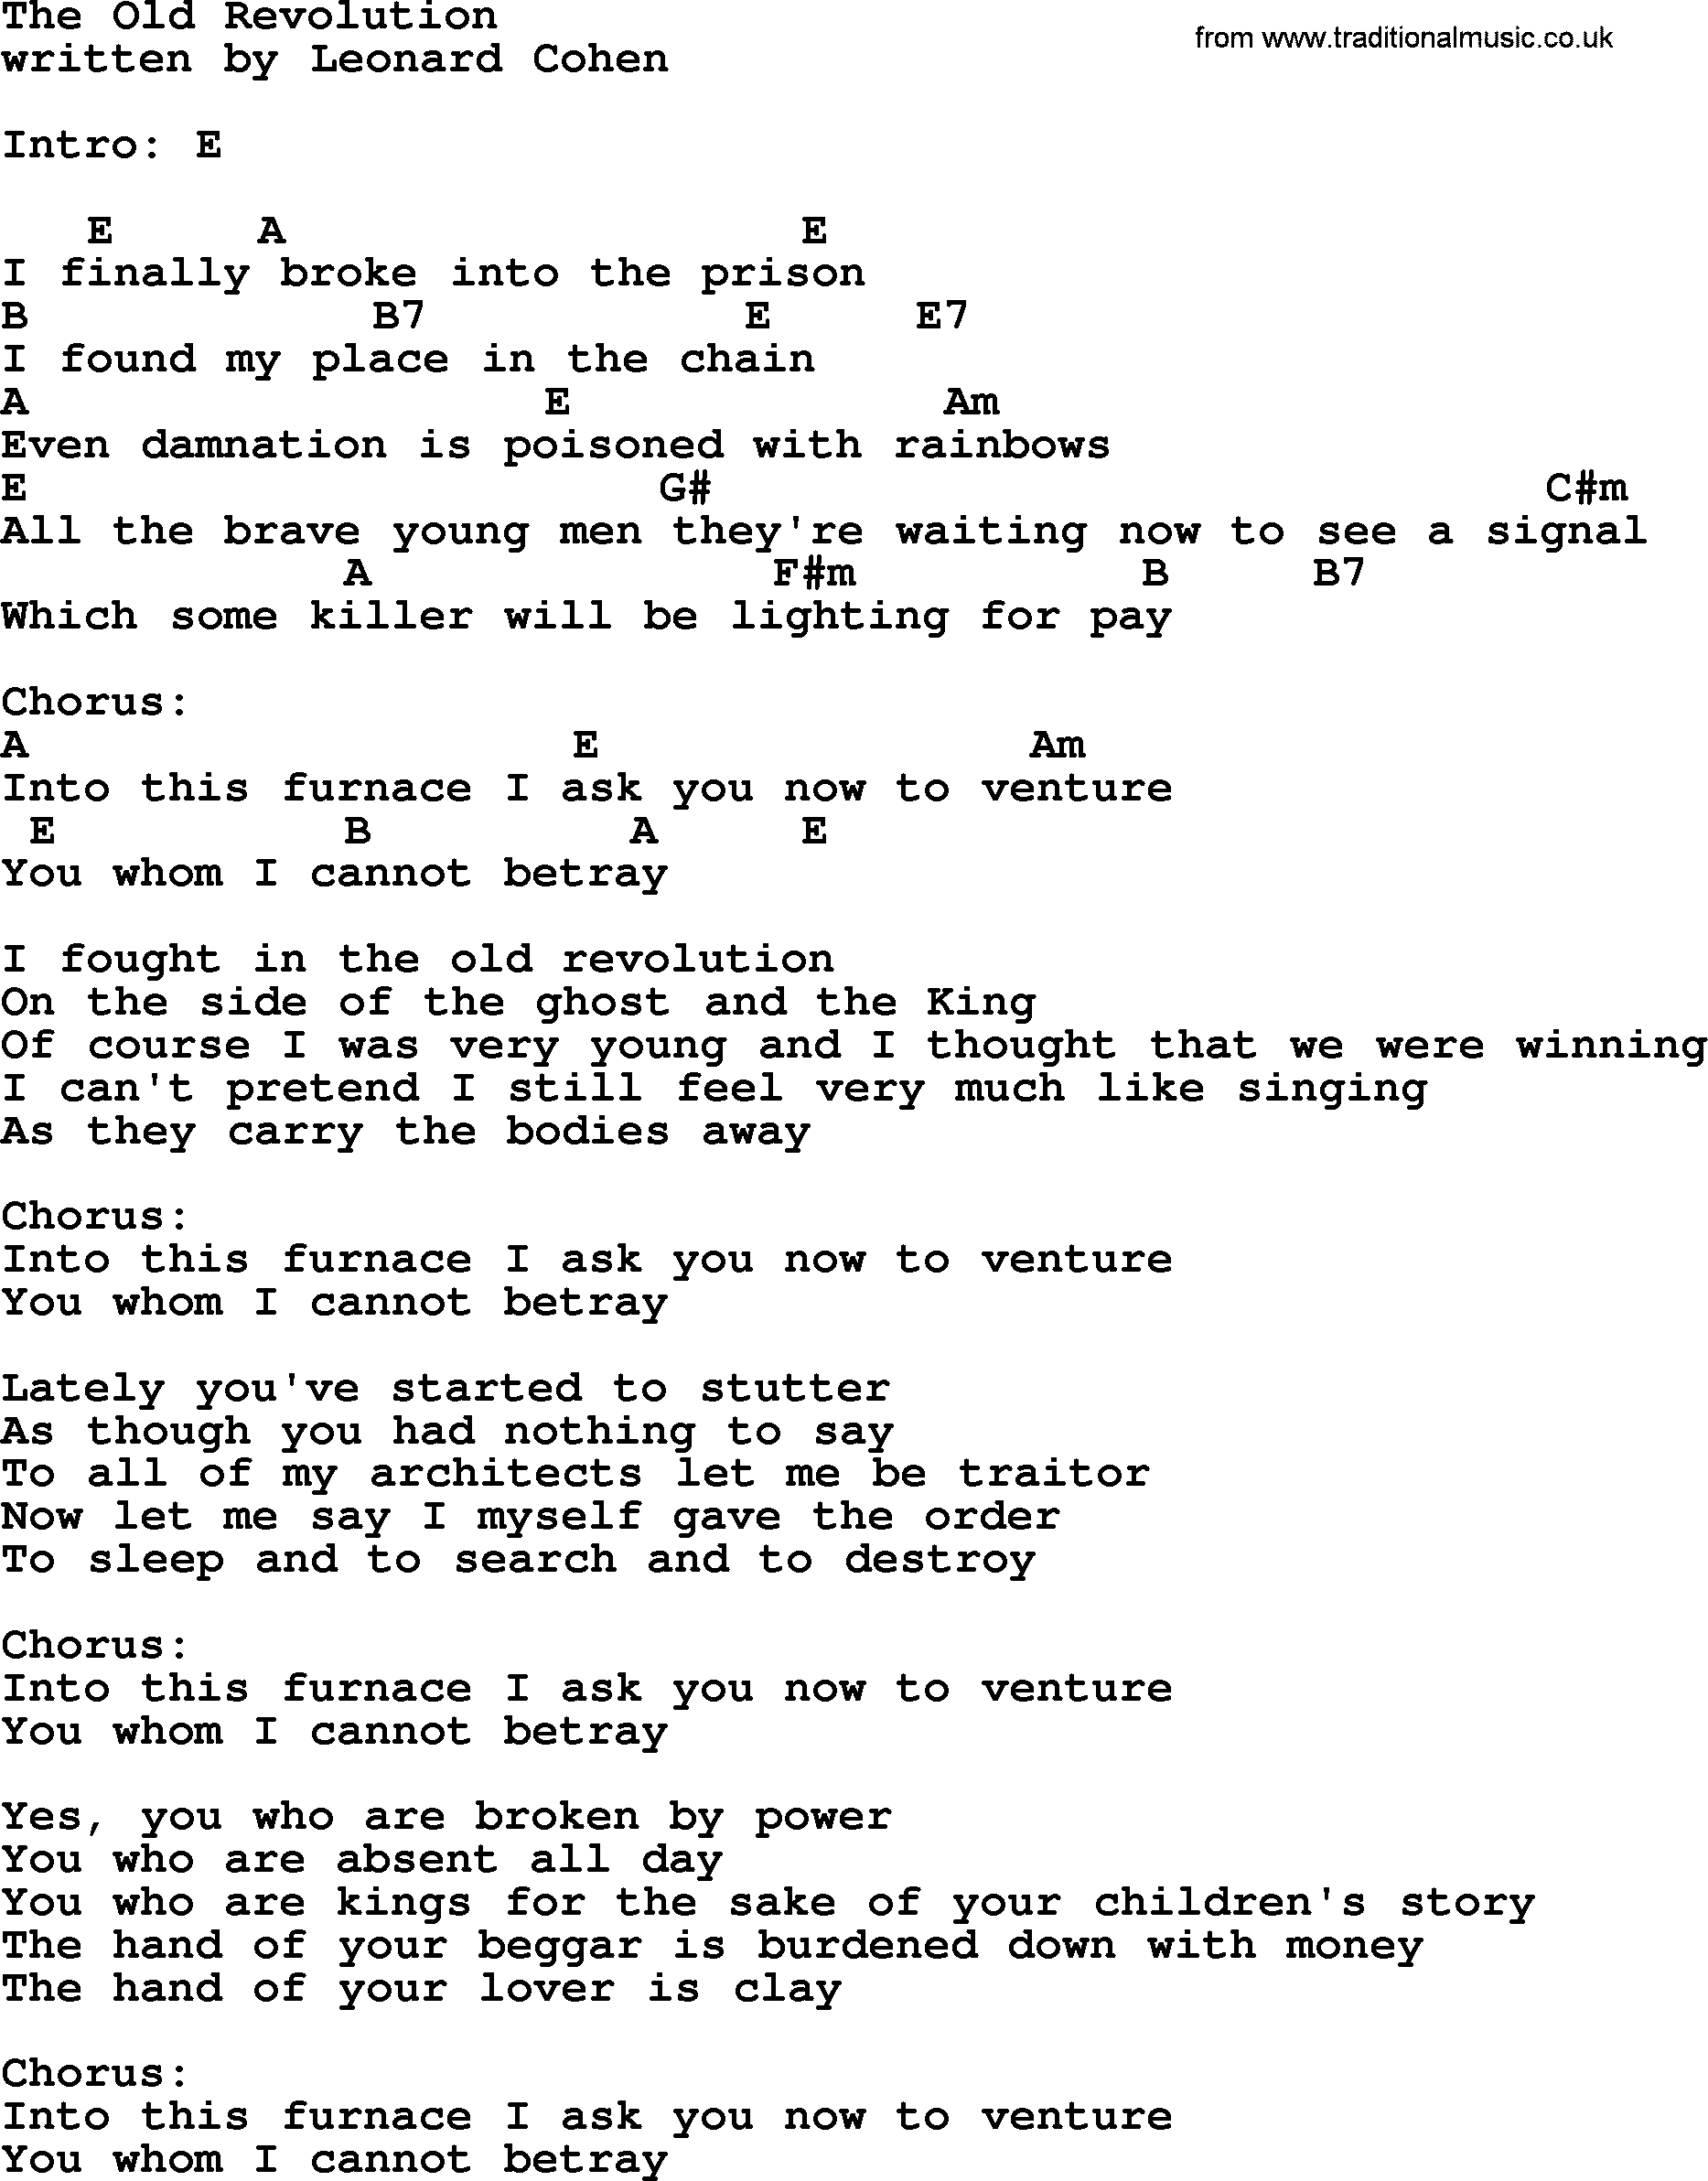 Leonard Cohen Song The Old Revolution Lyrics And Chords